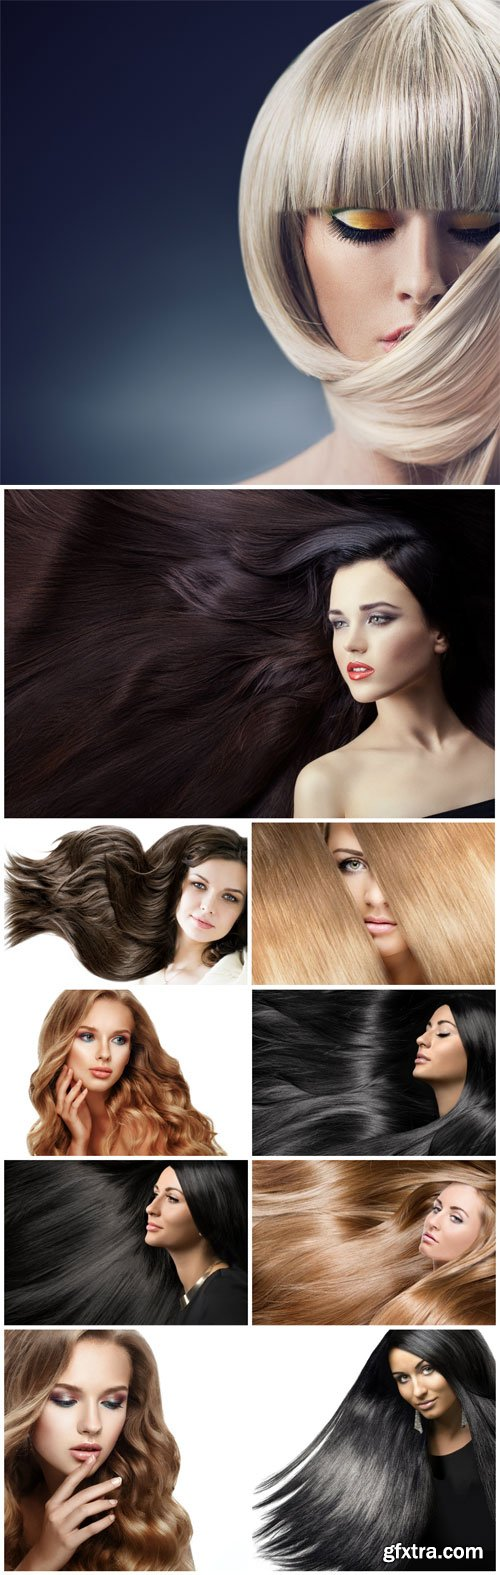 Girls with groomed long hair stock photo